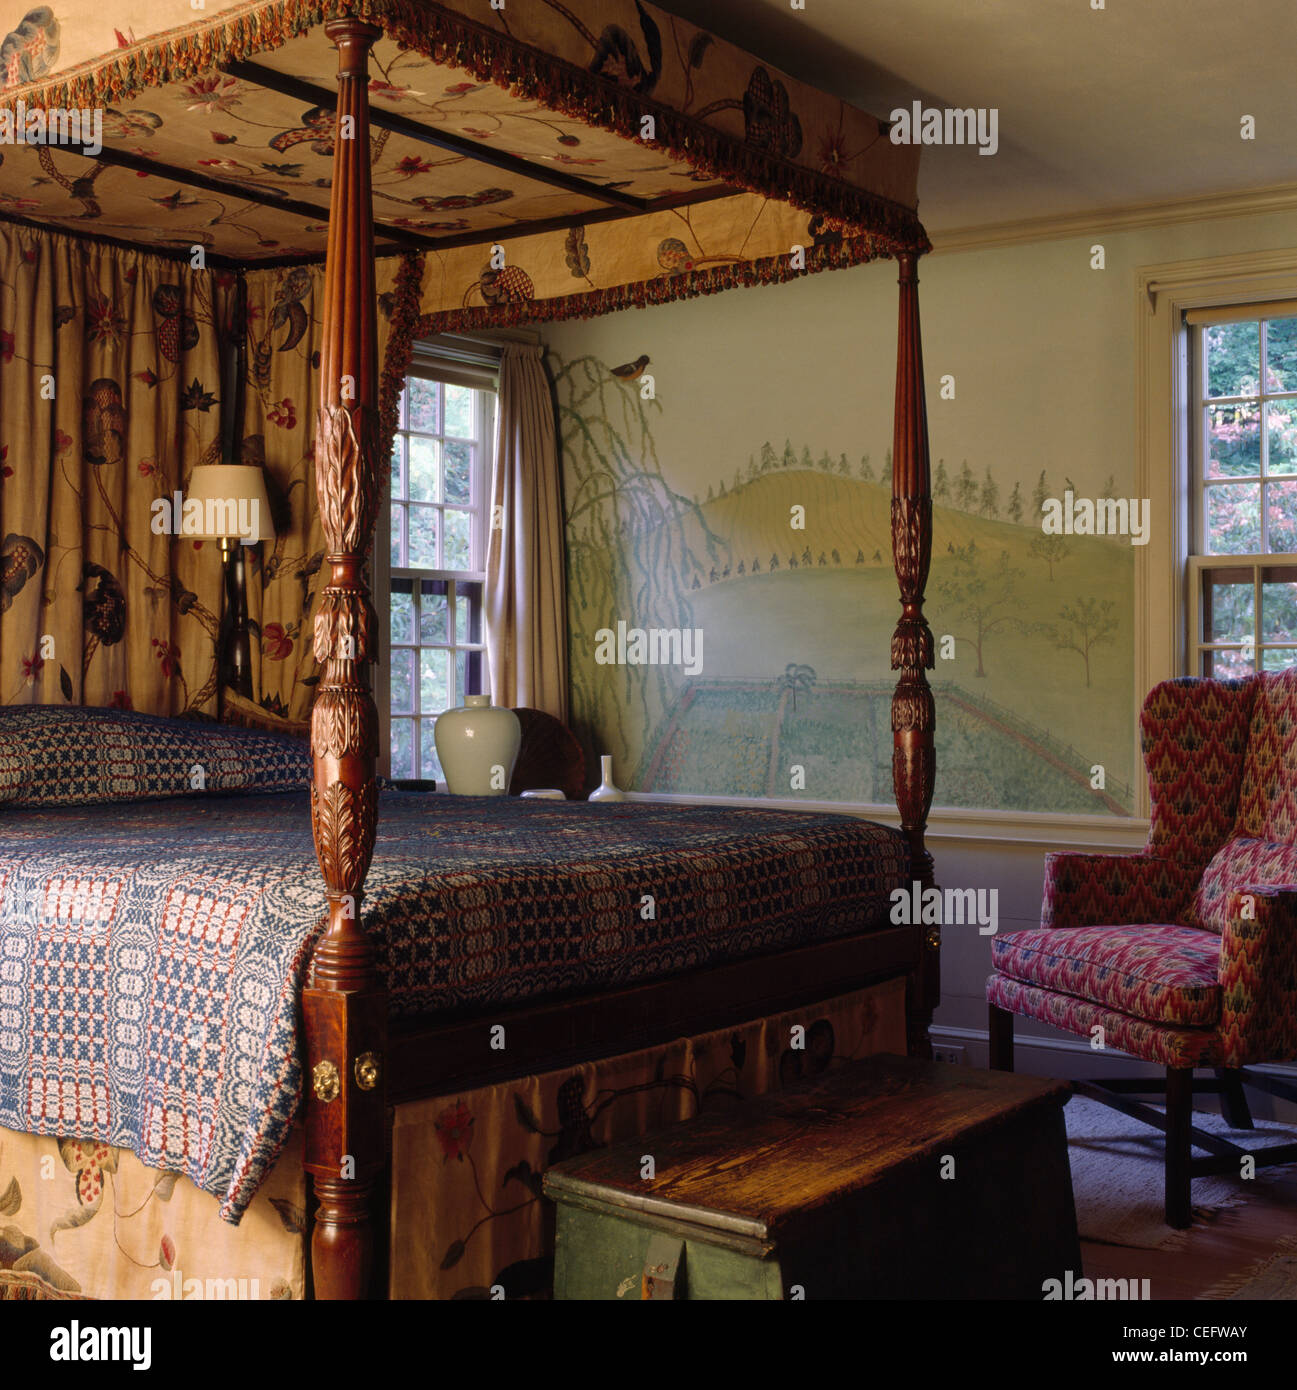 https www alamy com stock photo woven wool blanket on antique four poster bed in country bedroom with 43375107 html